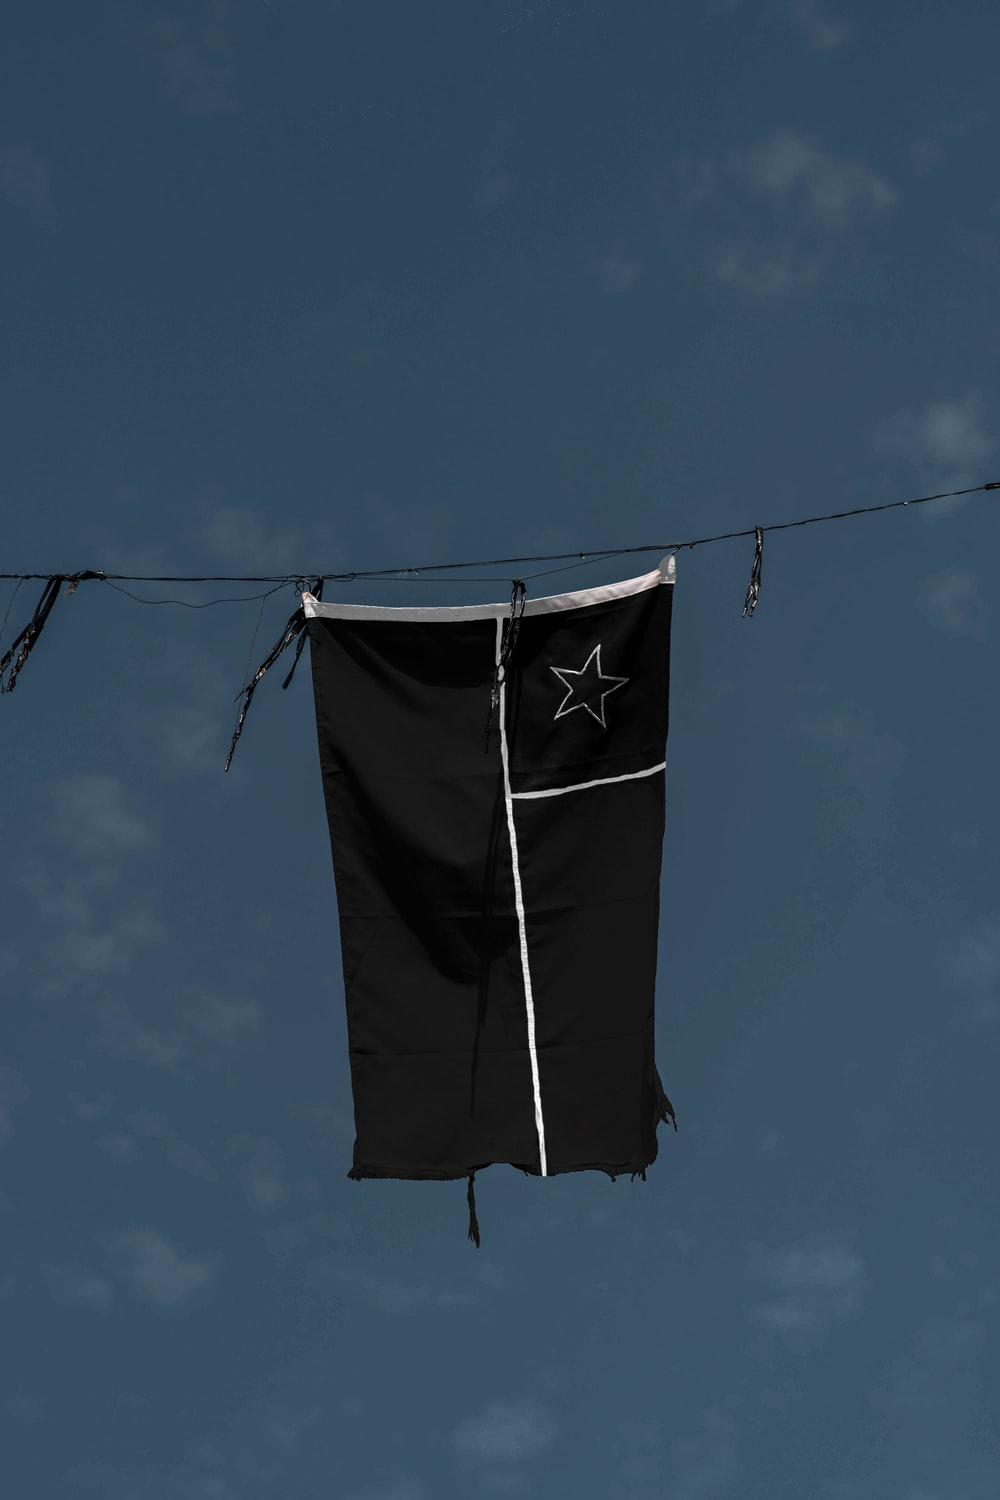 black and white textile hanging on wire